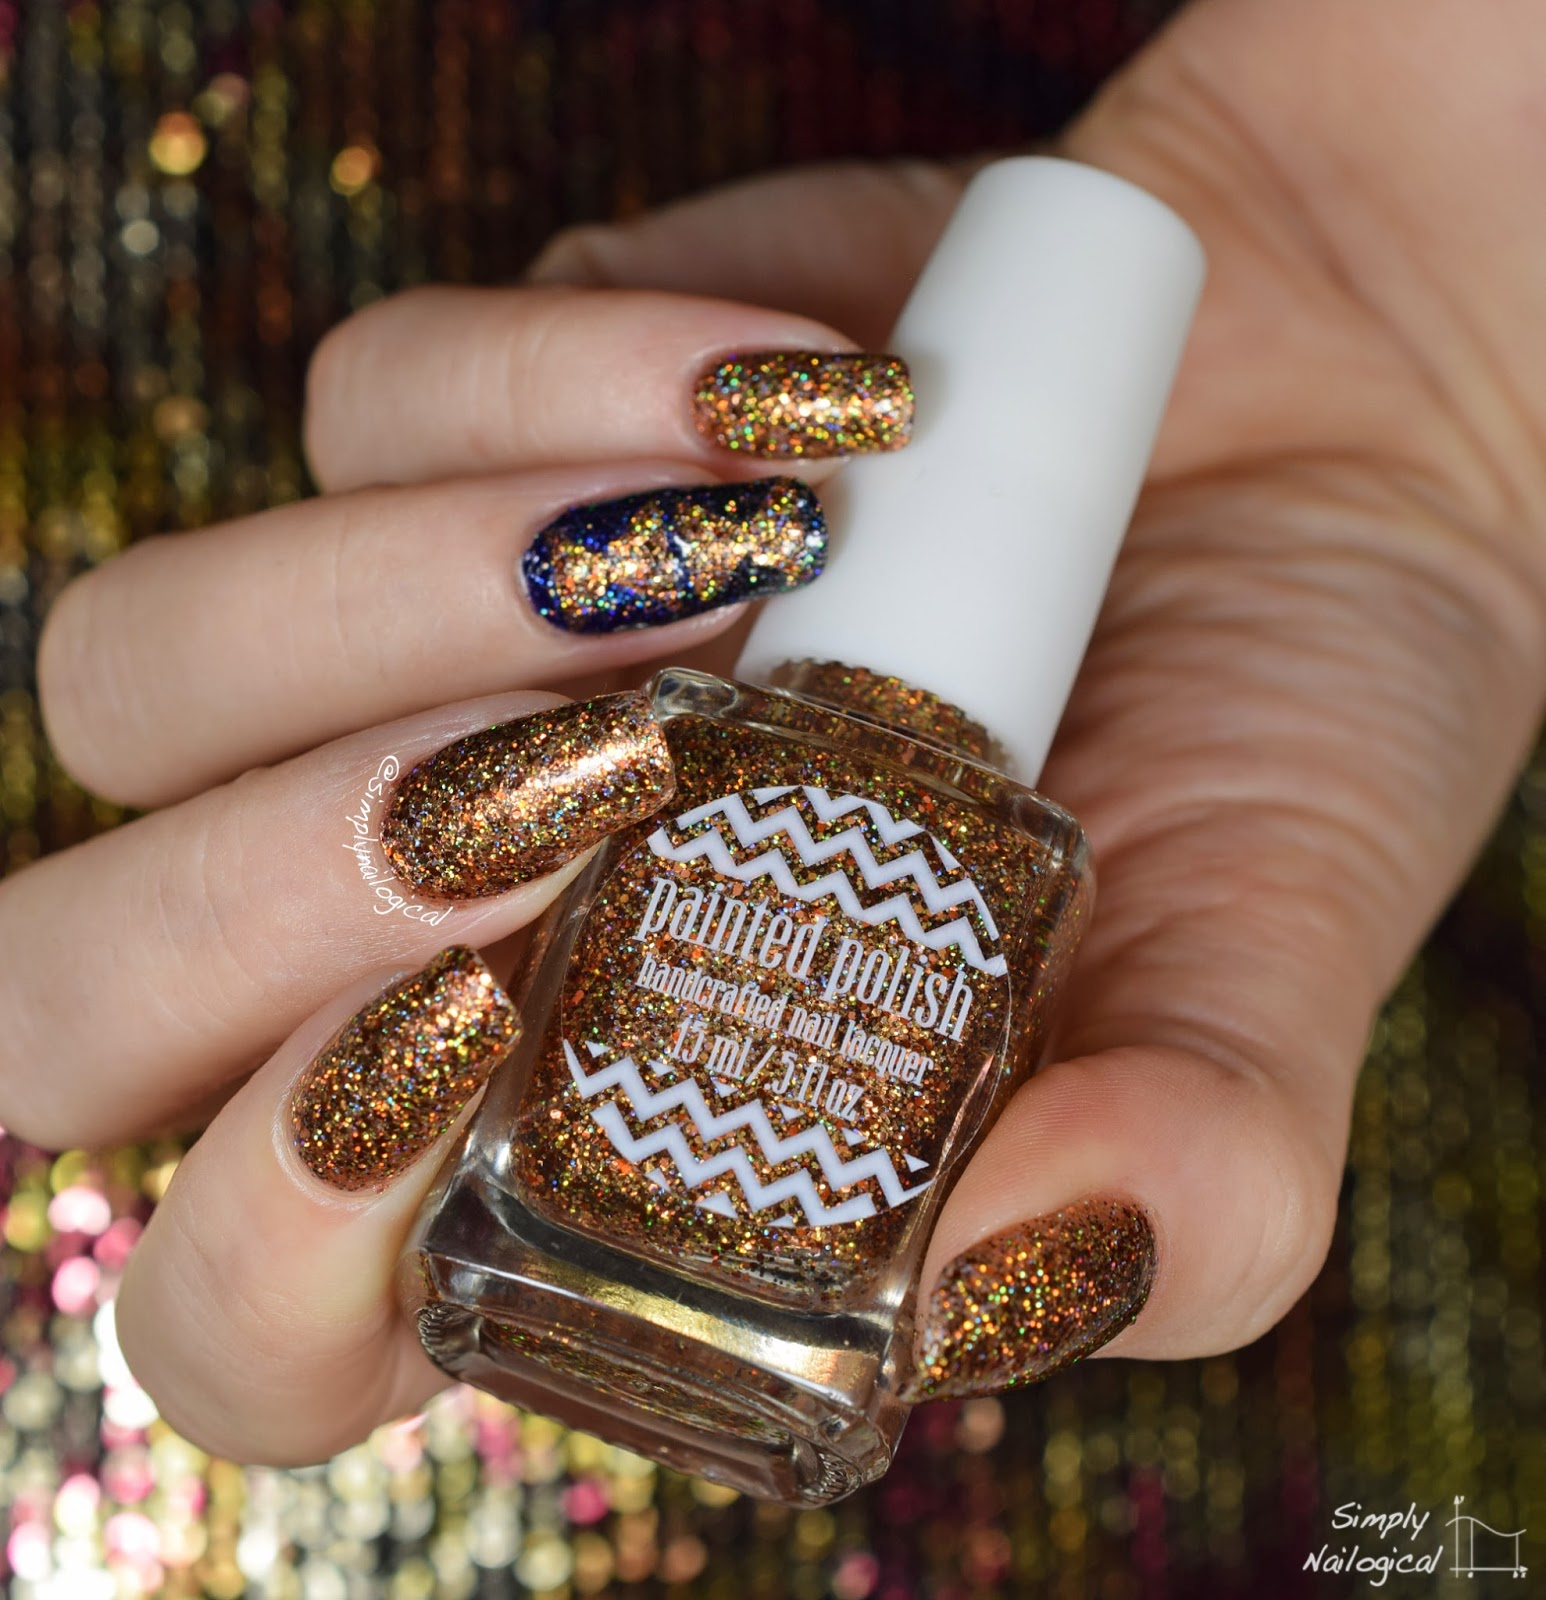 Painted Polish - #PSL